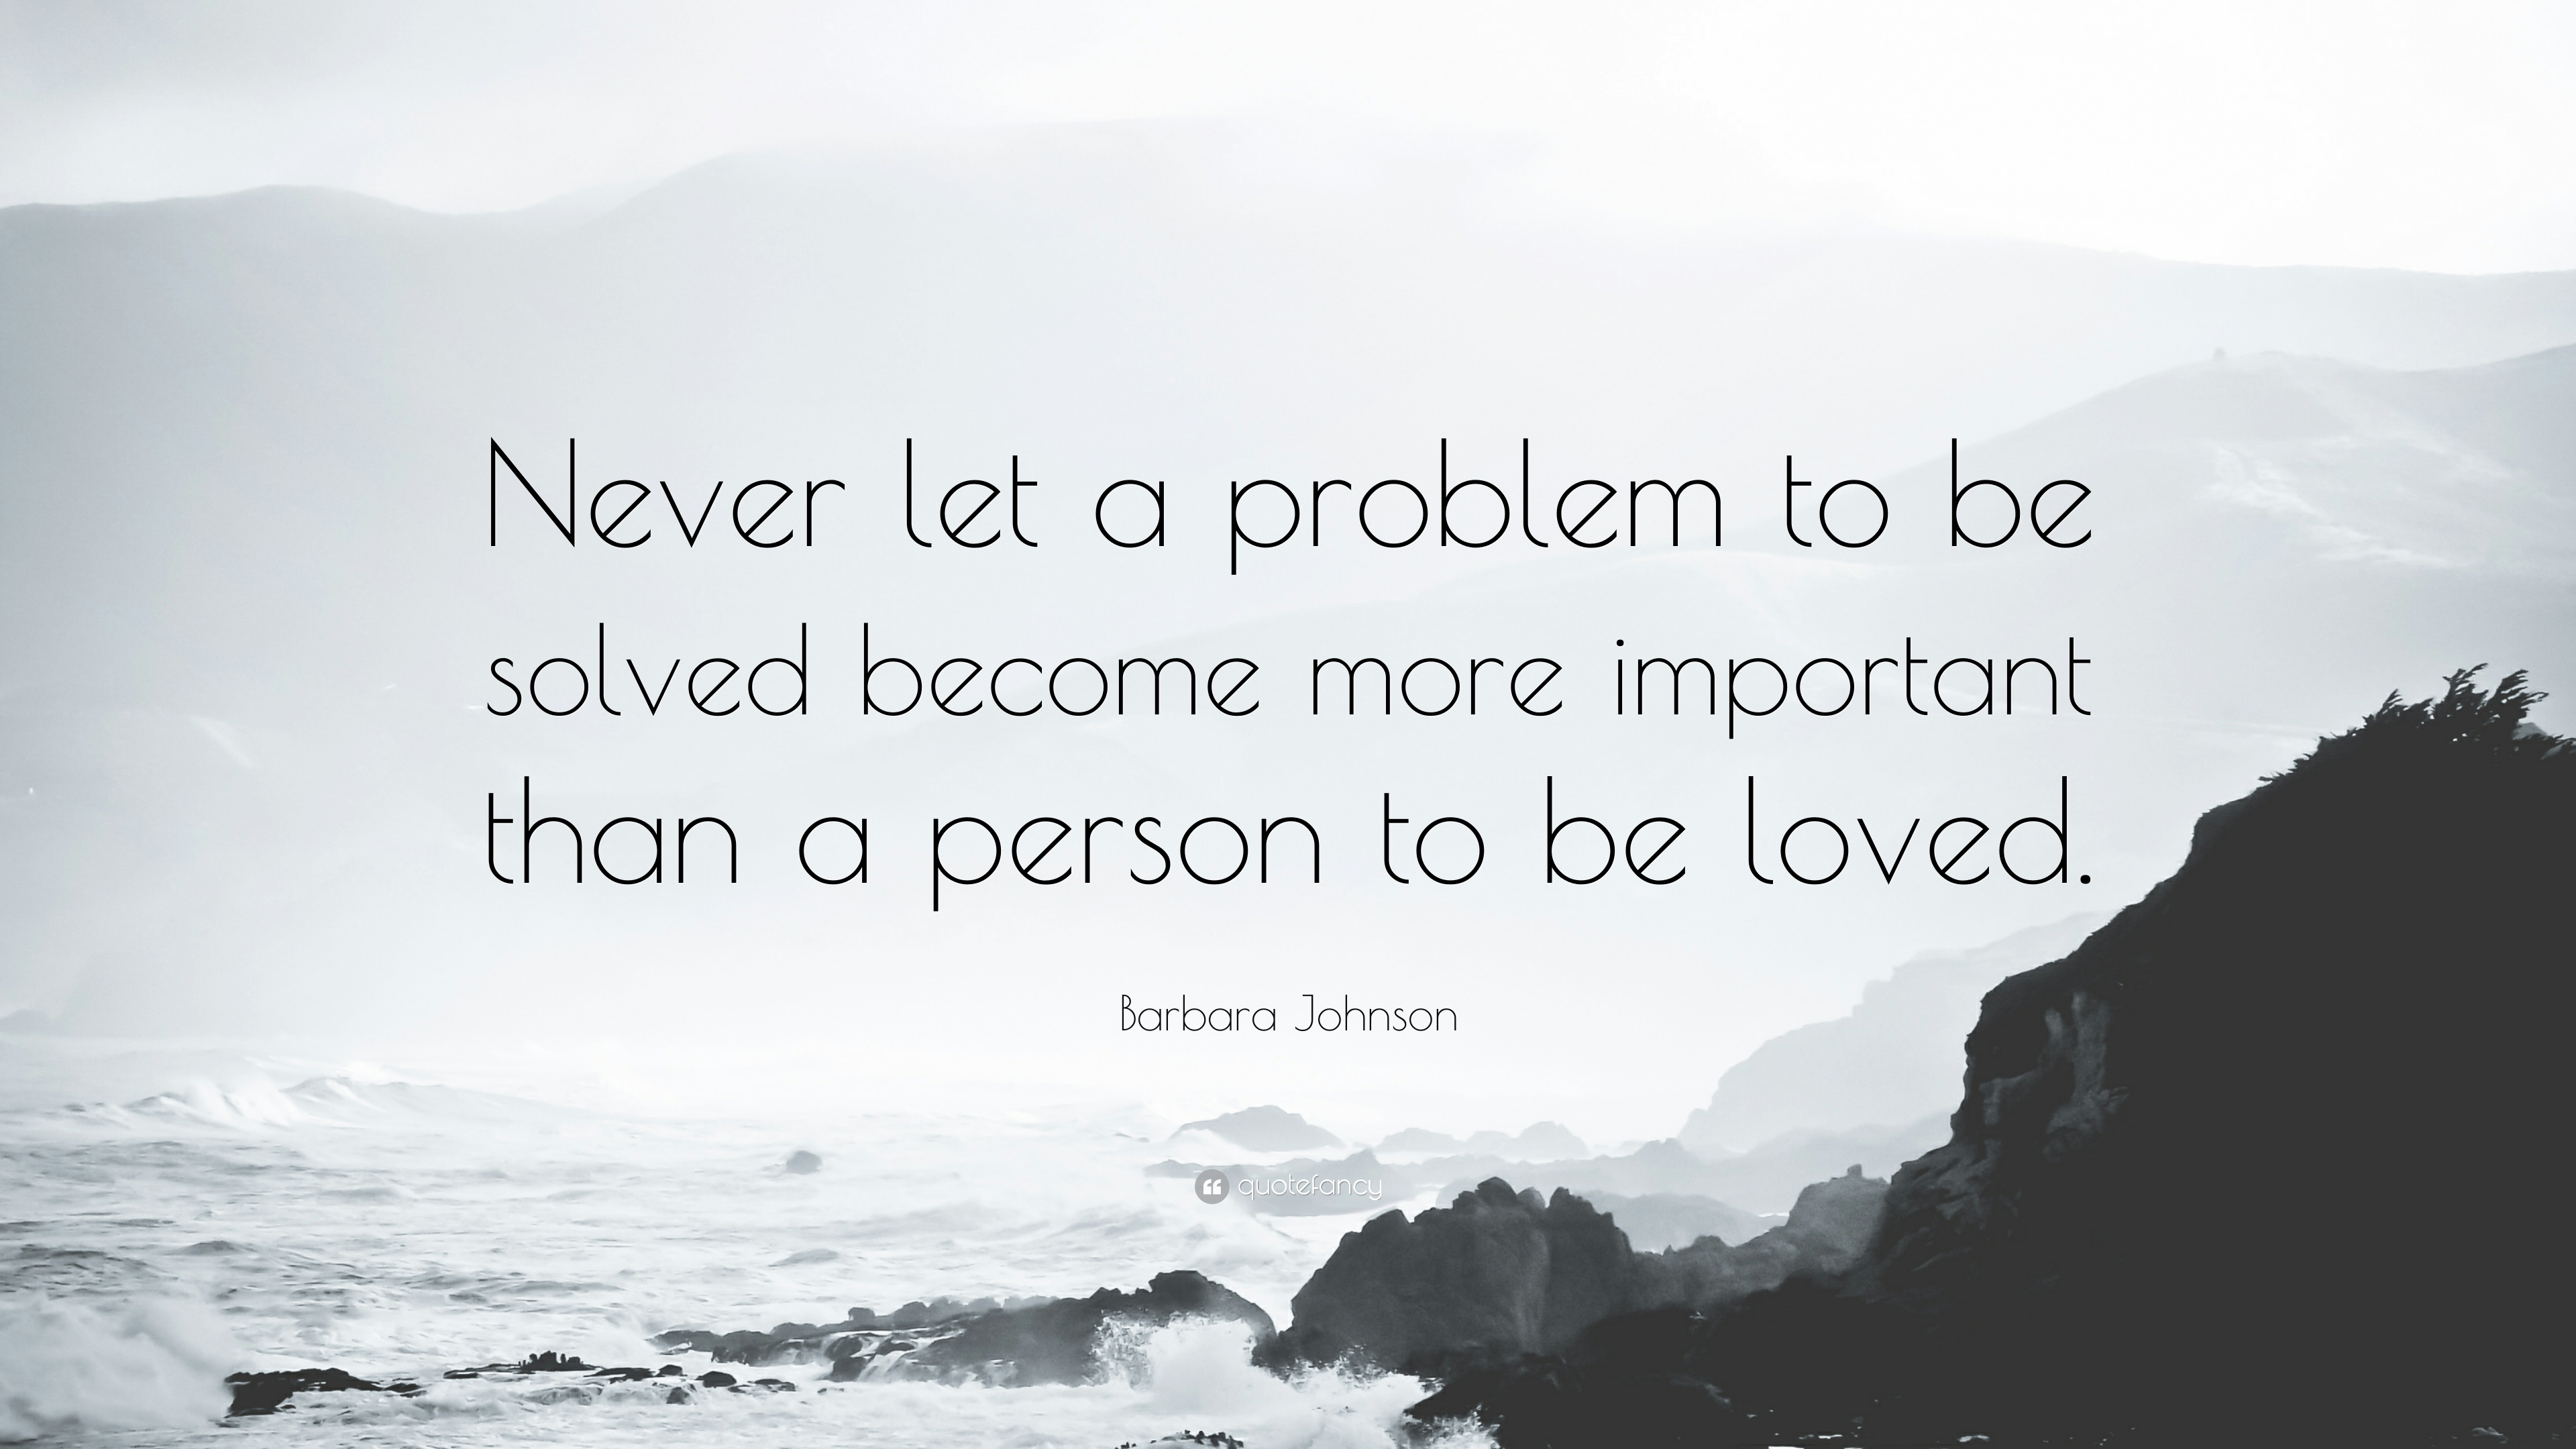 Spirit Science Quotes Wallpapers Barbara Johnson Quote Never Let A Problem To Be Solved